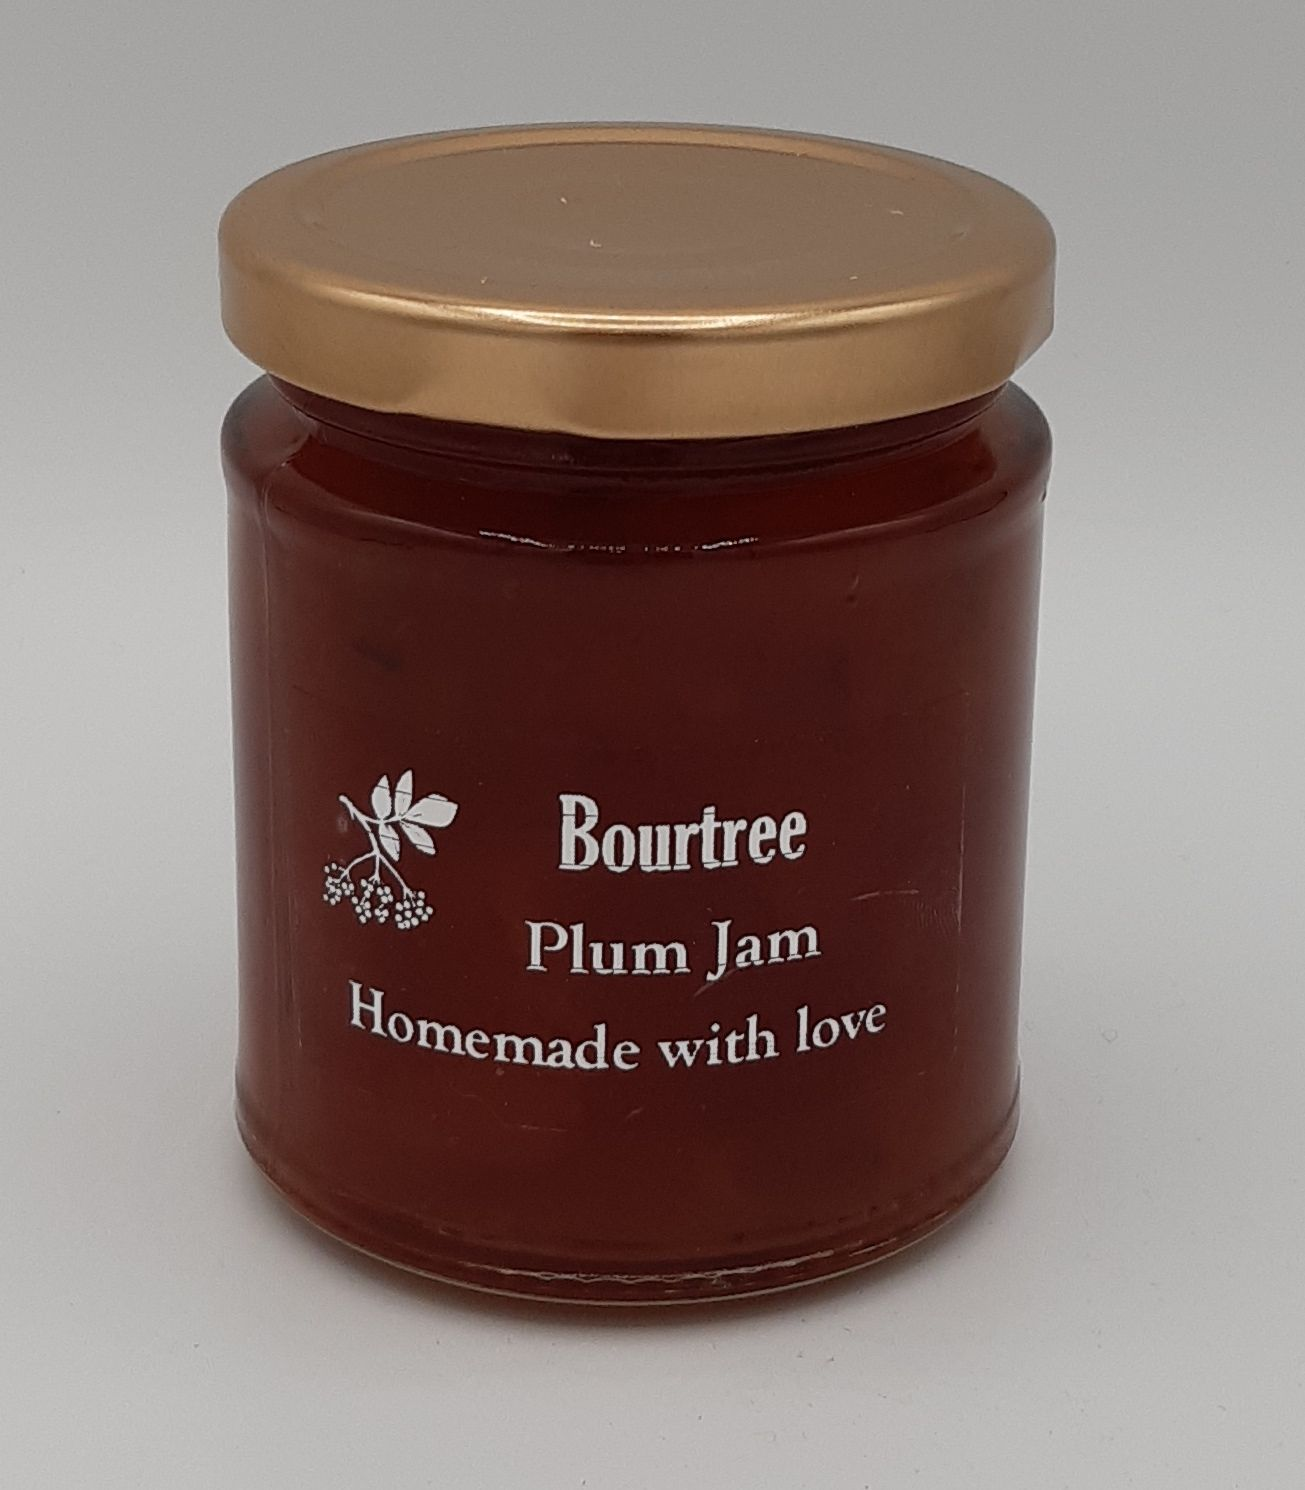 Bourtree Plum Jam